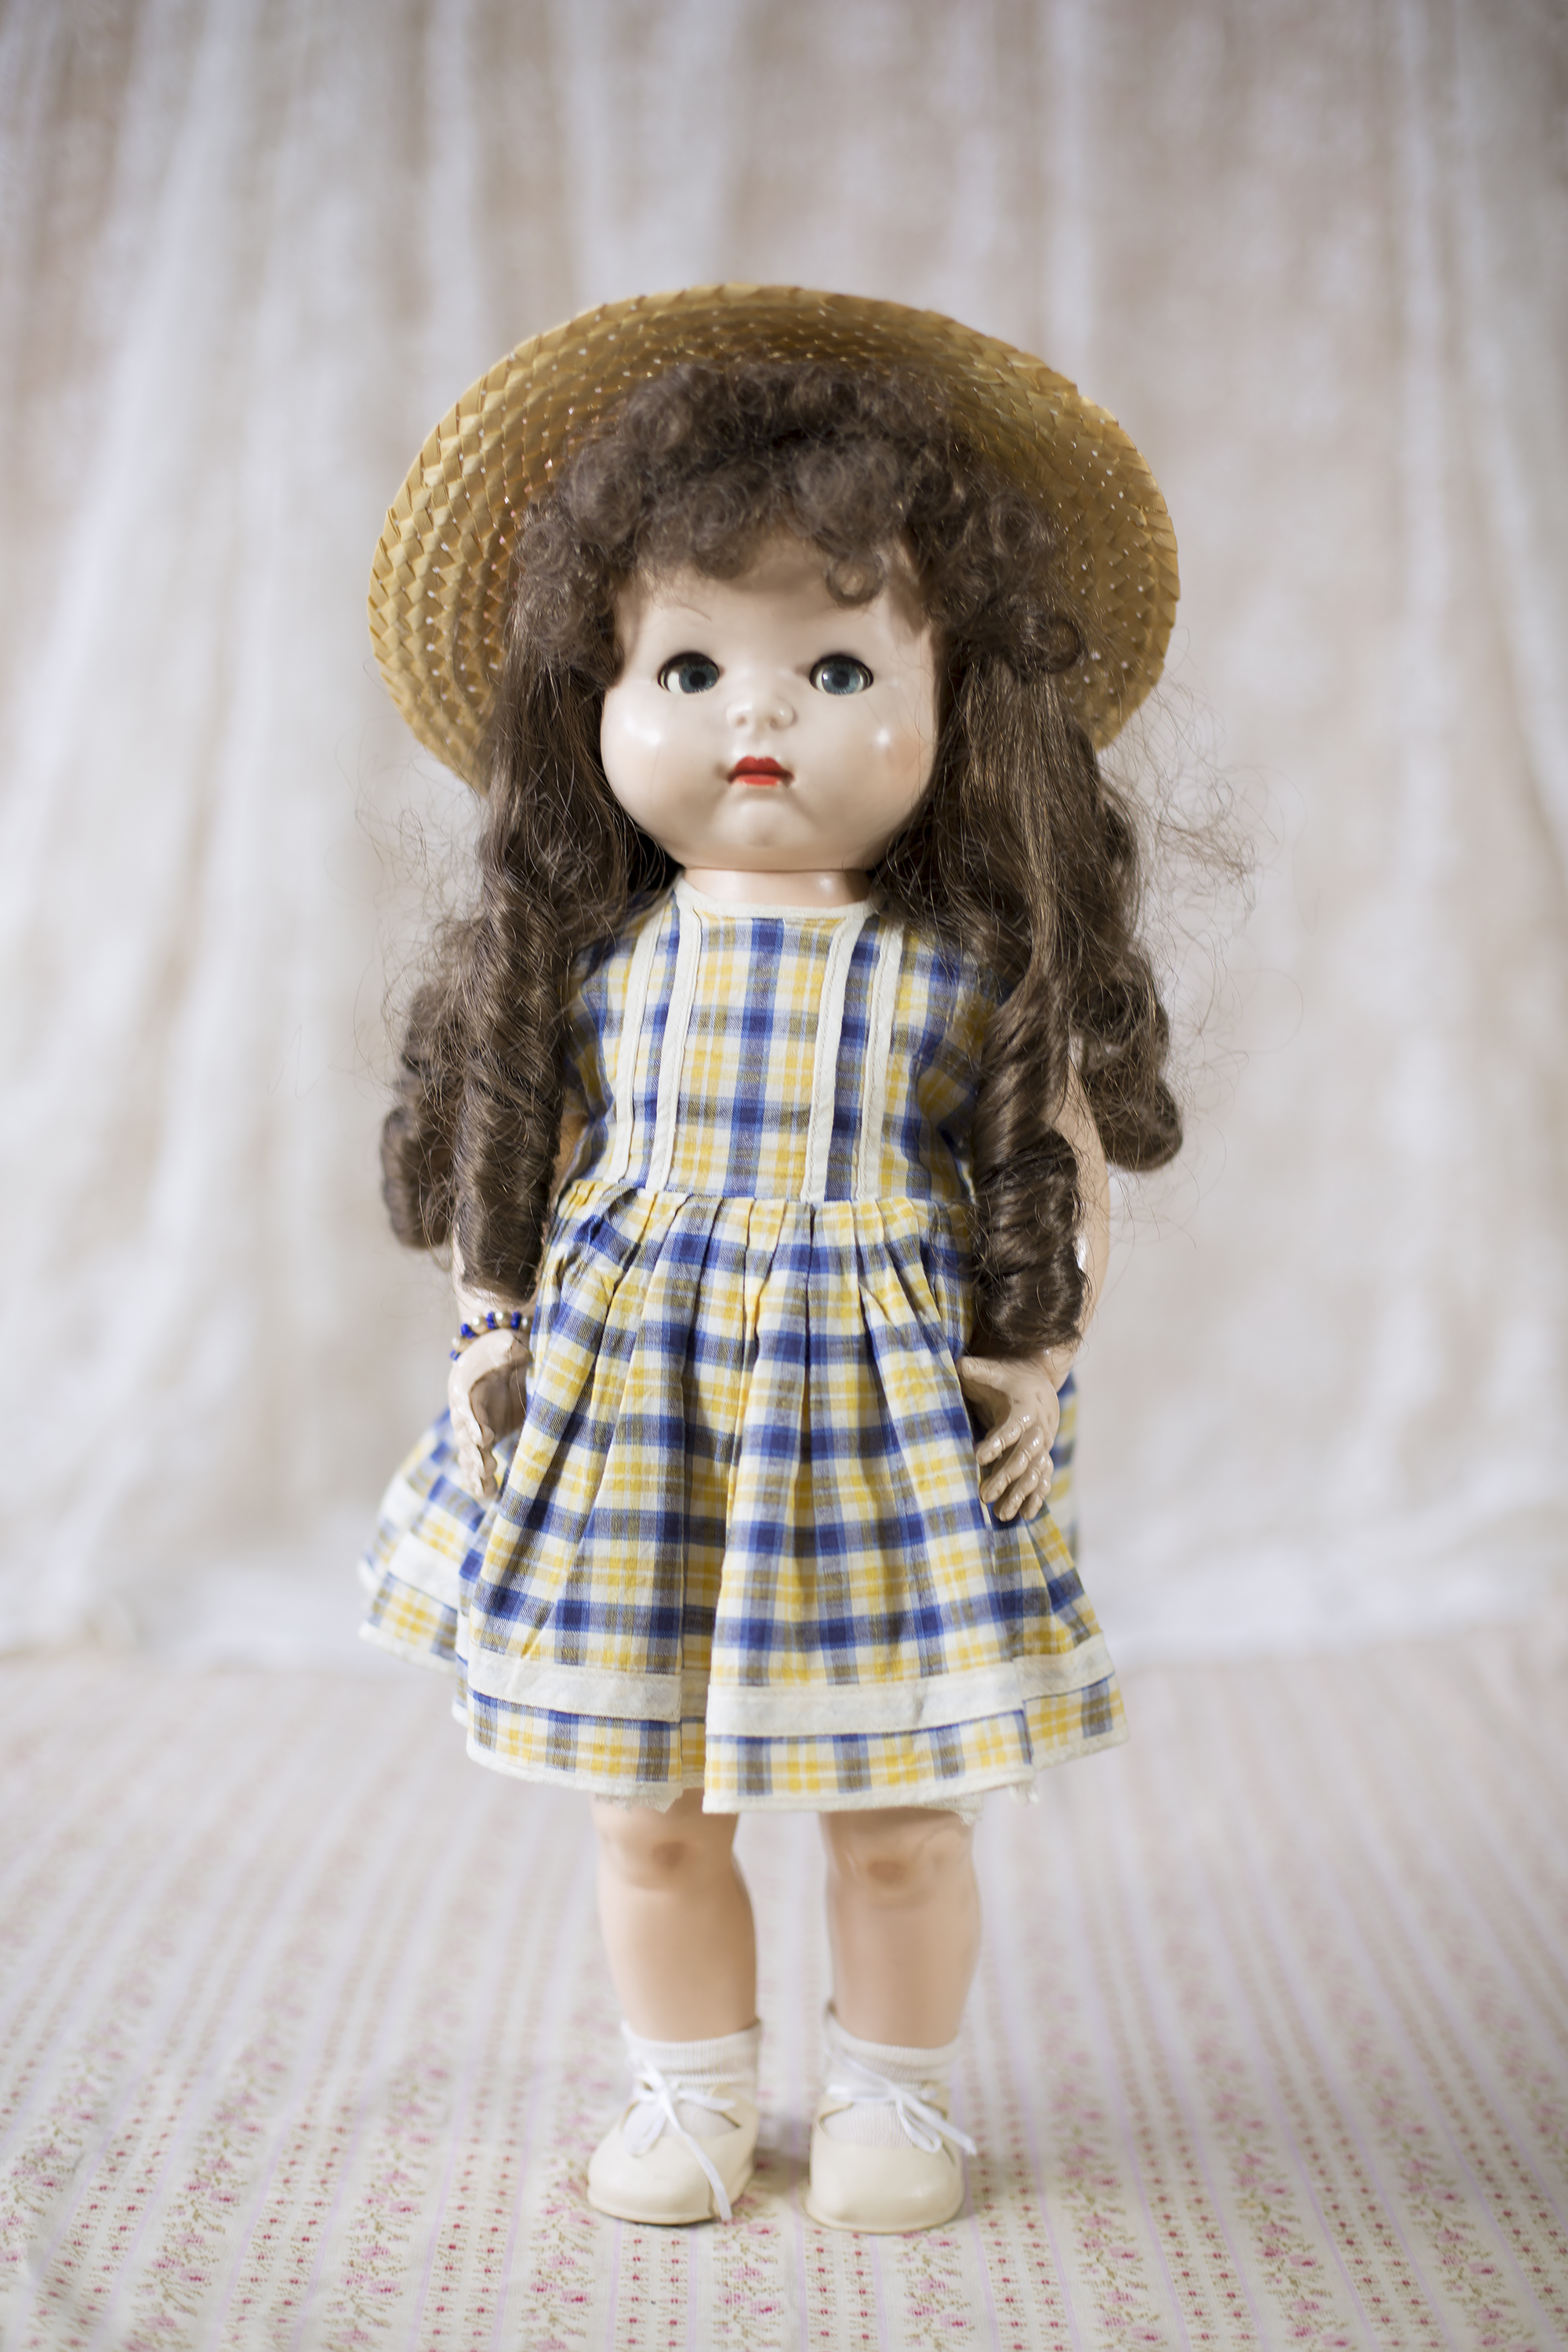 """Judith's """"Walkie Talkie"""" doll from the 1960's, she is still in her original frock with straw hat, shoes and socks. Orginal wig was brown hair in plaits, which has been replaced twice."""